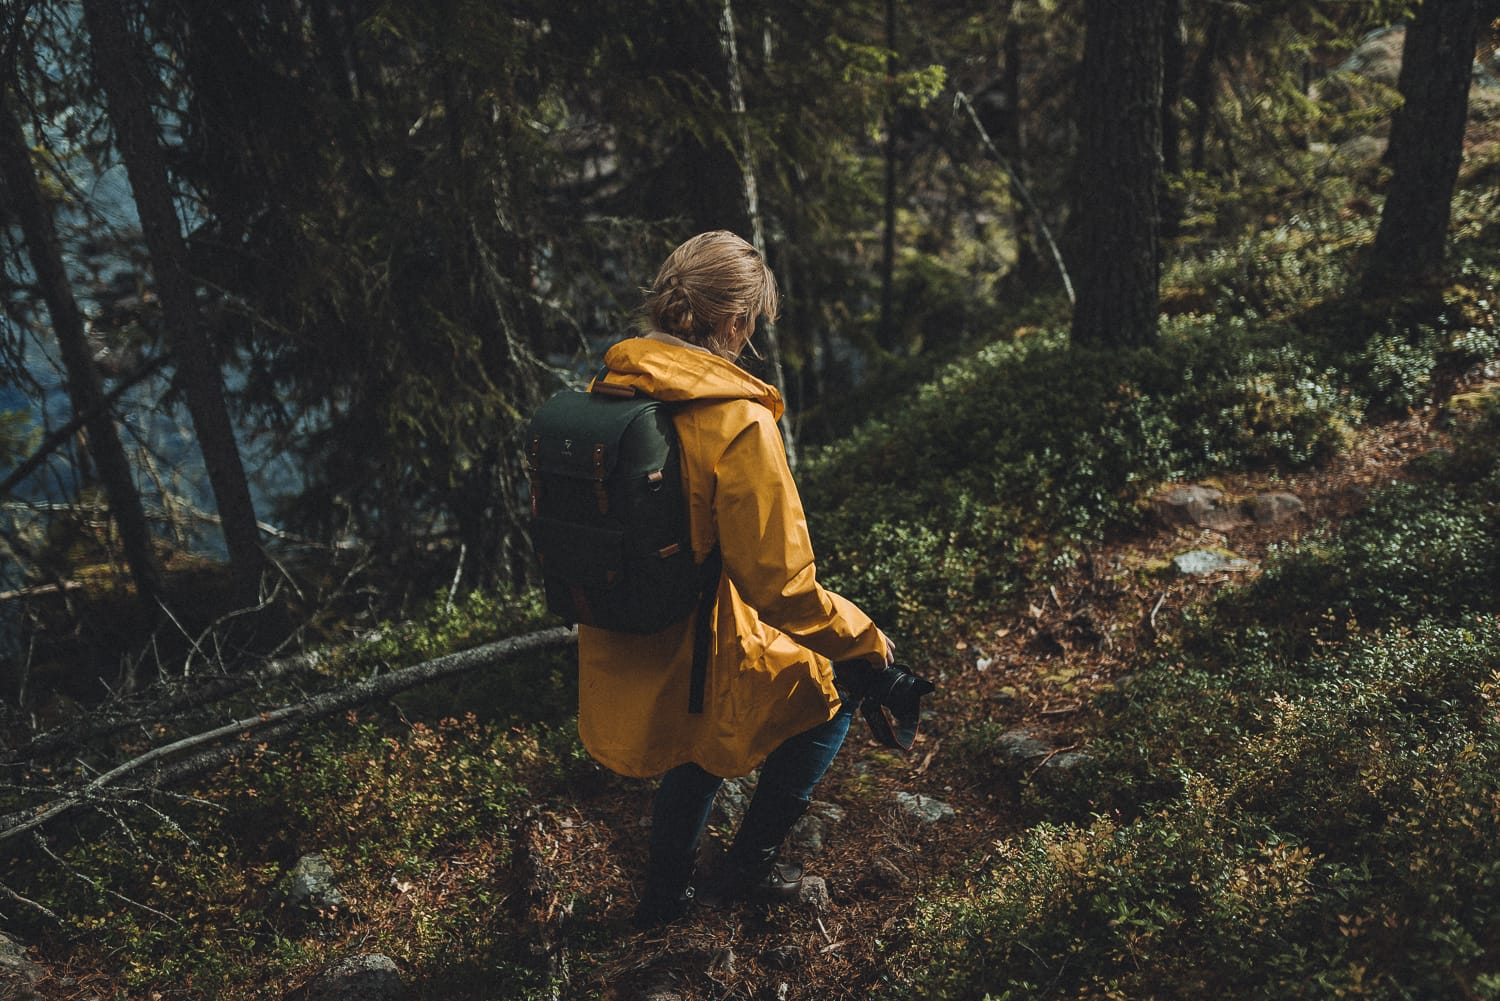 woman walking in a forest holding a camera